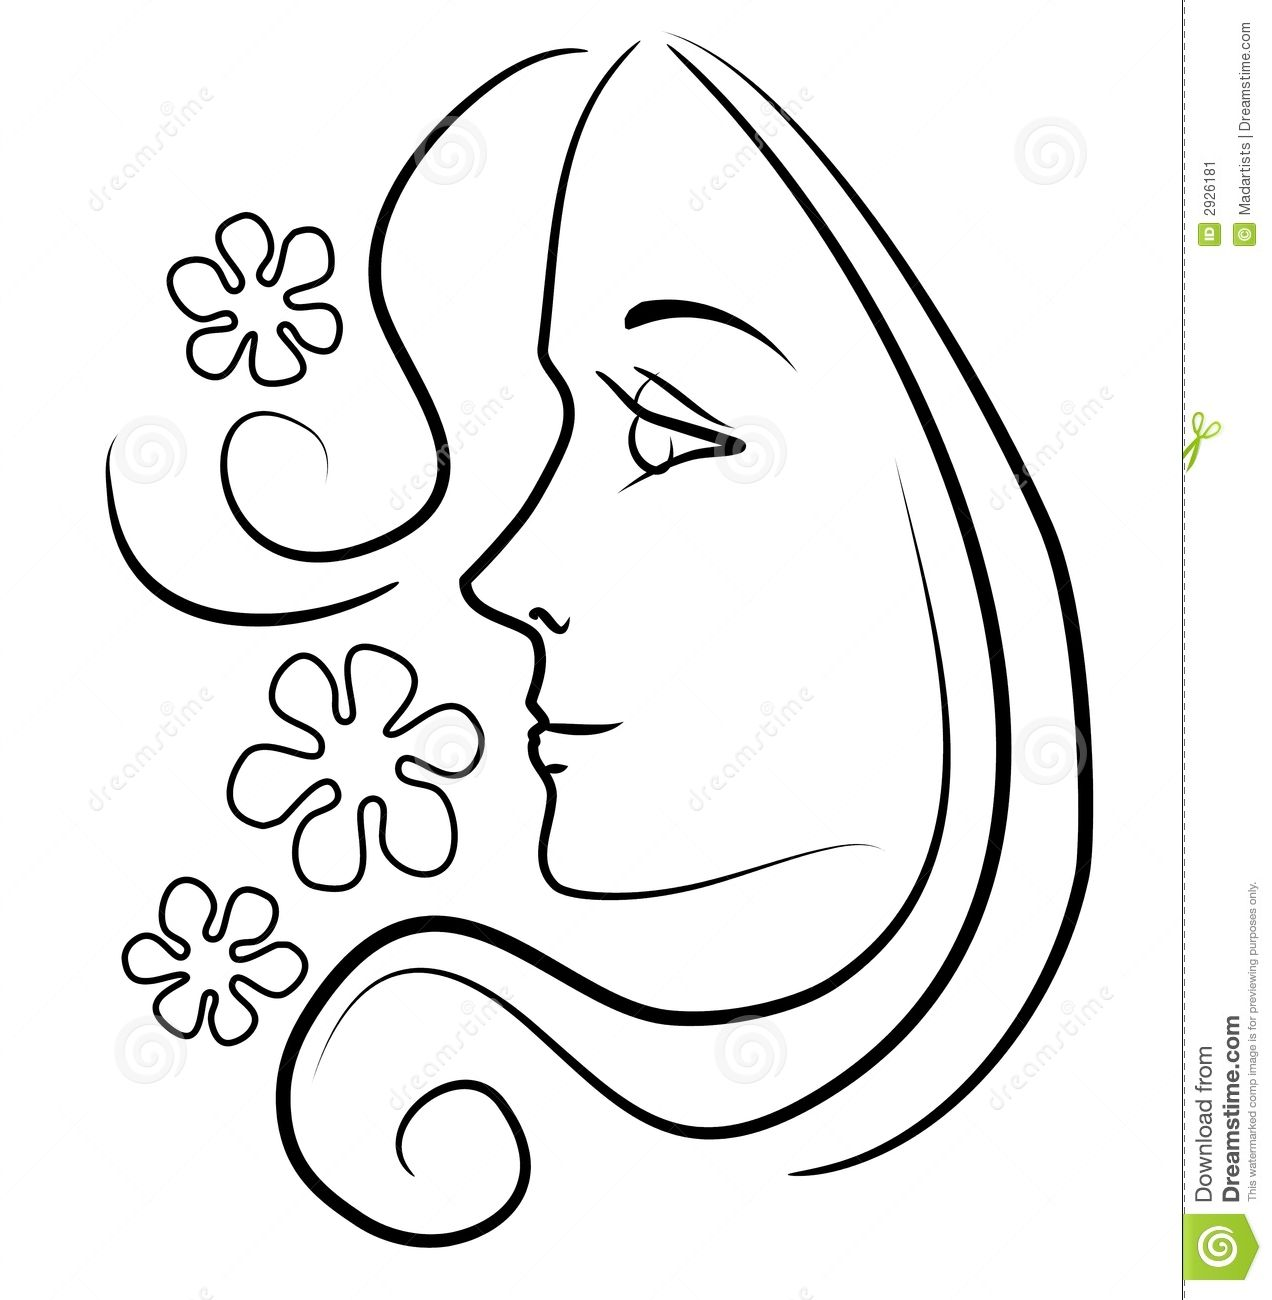 Woman sketch clipart jpg free download Woman Outline Sketch at PaintingValley.com | Explore ... jpg free download